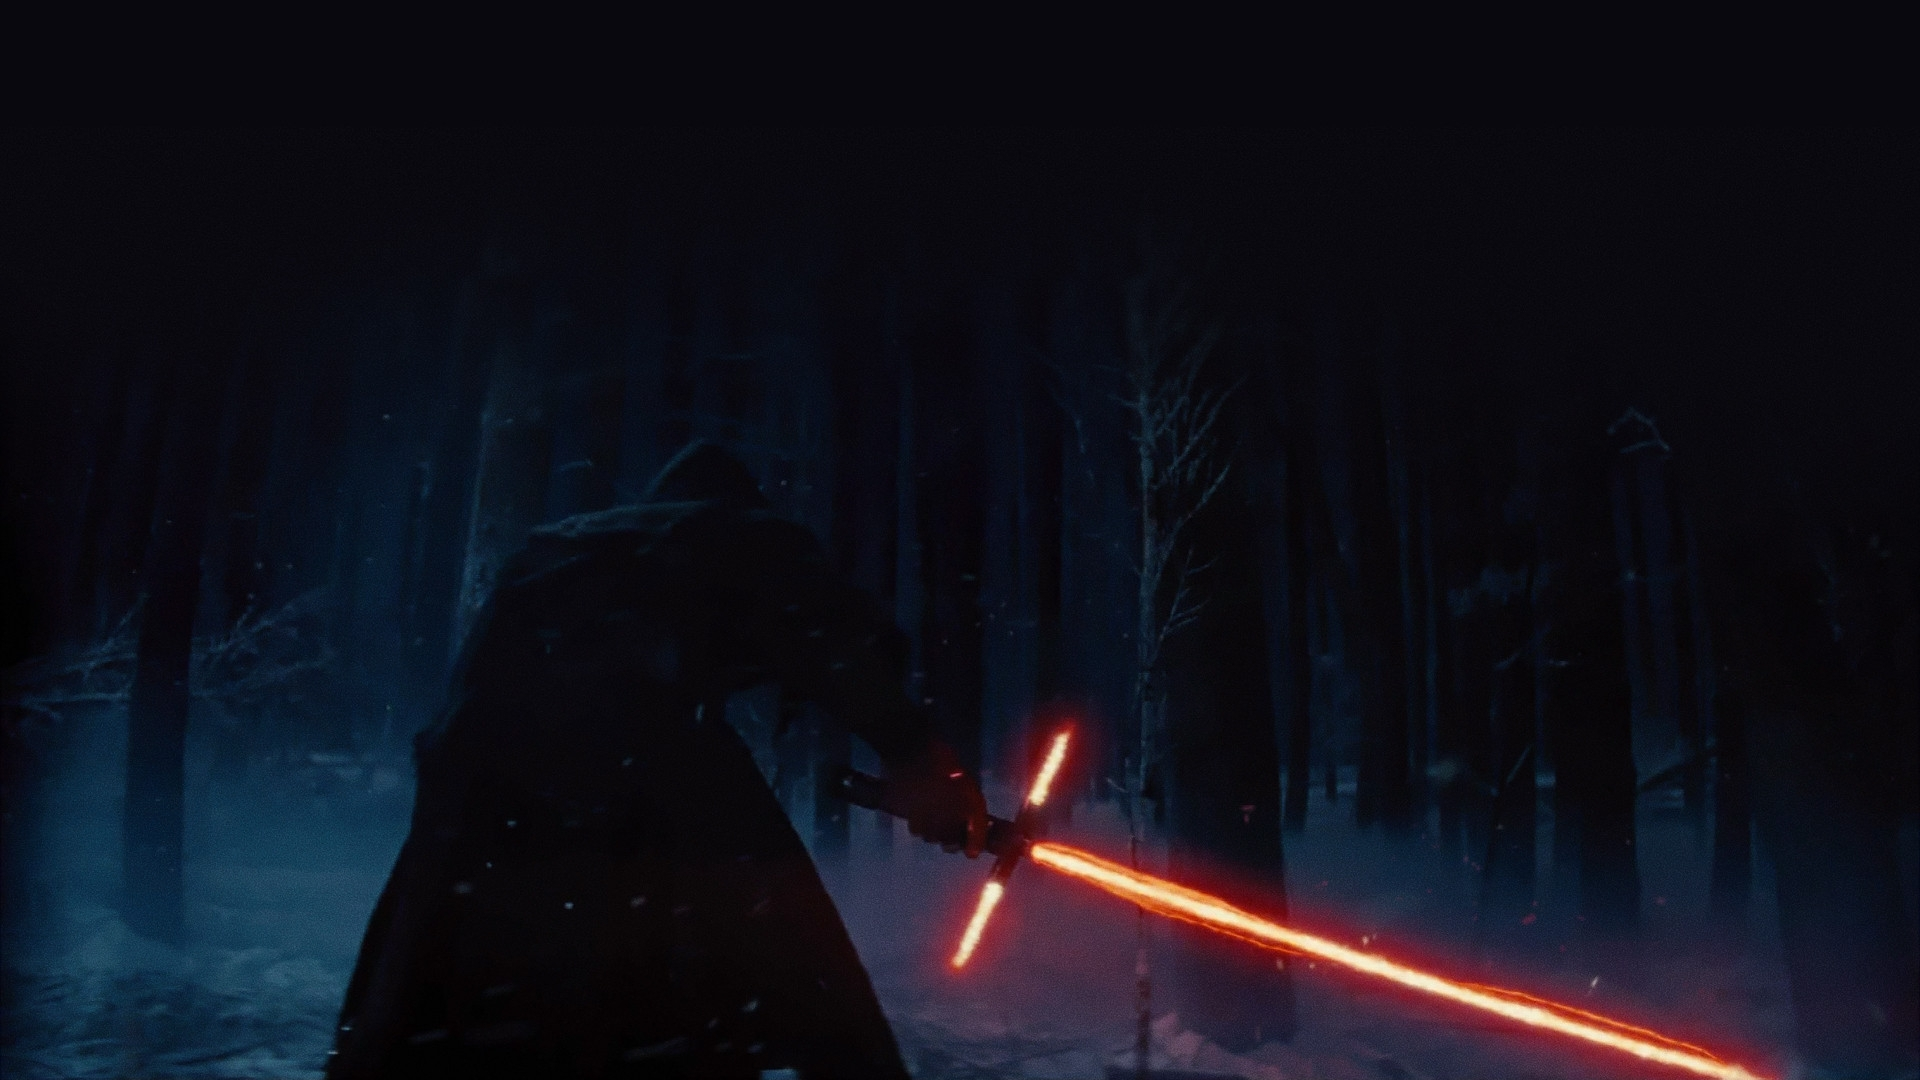 star wars: the force awakens desktop wallpapers - album on imgur